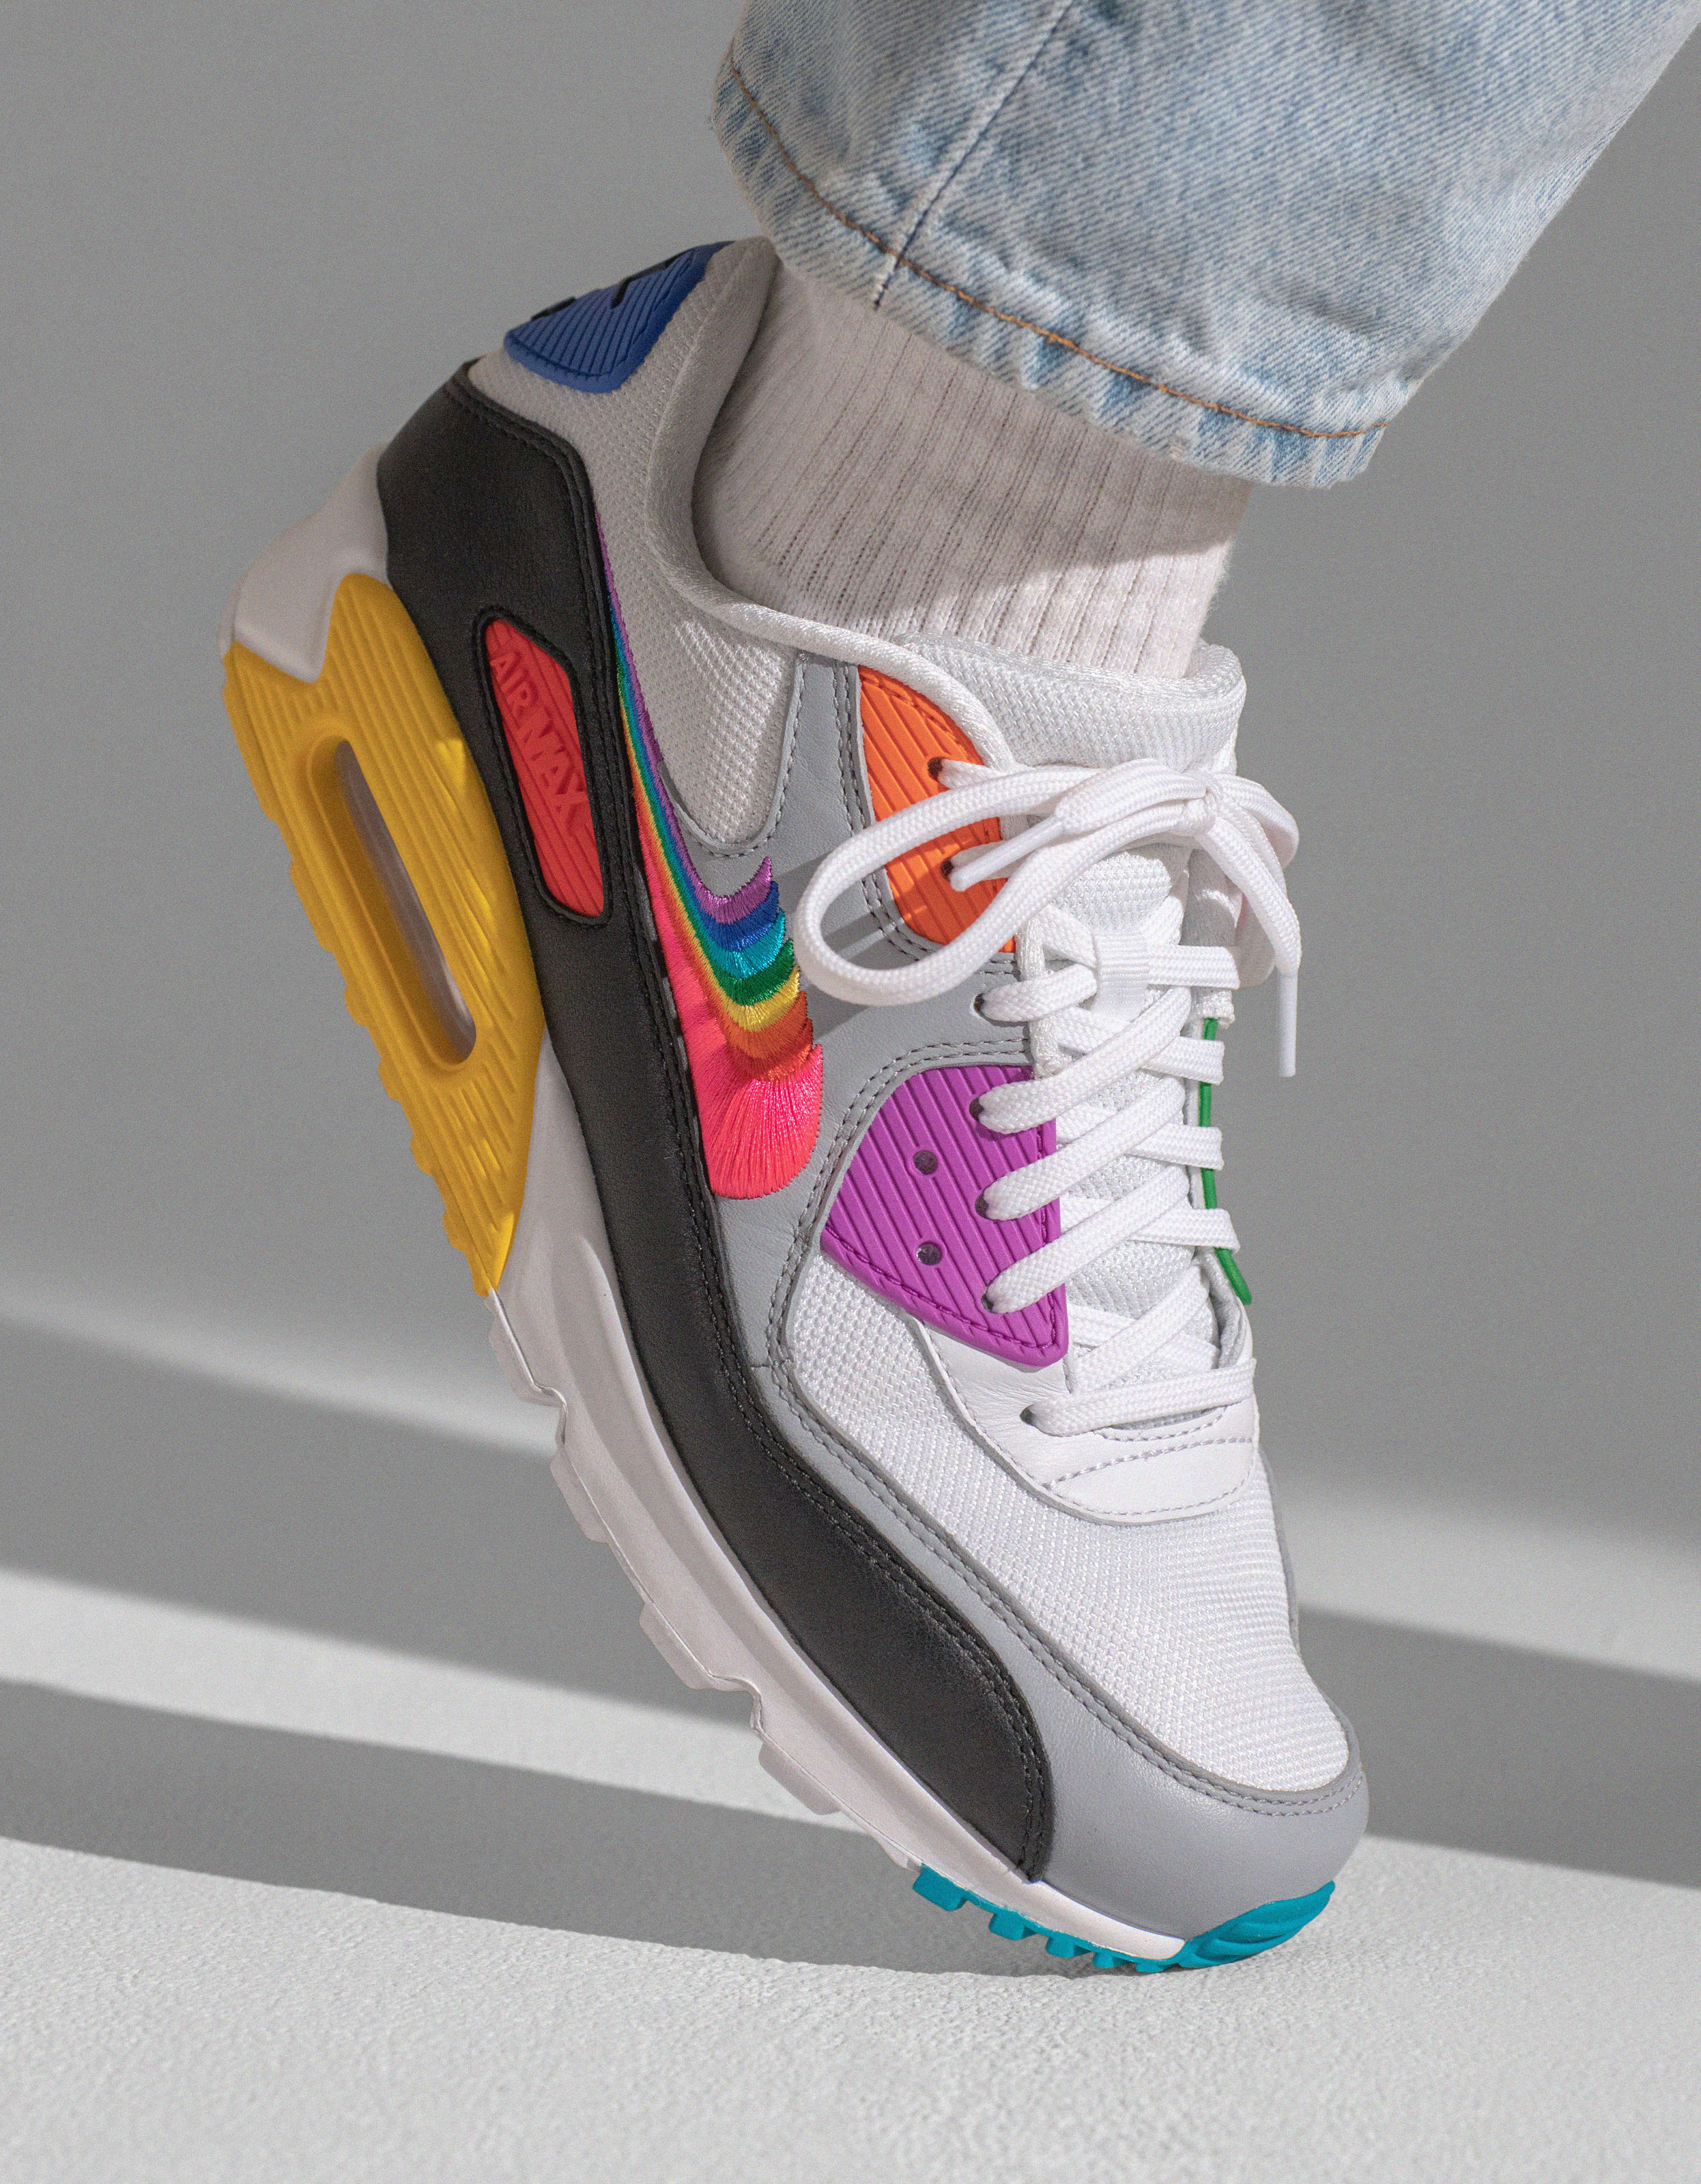 b48f0a1b79 Nike Be True Rainbow Collection 2019 Release Date | Sole Collector